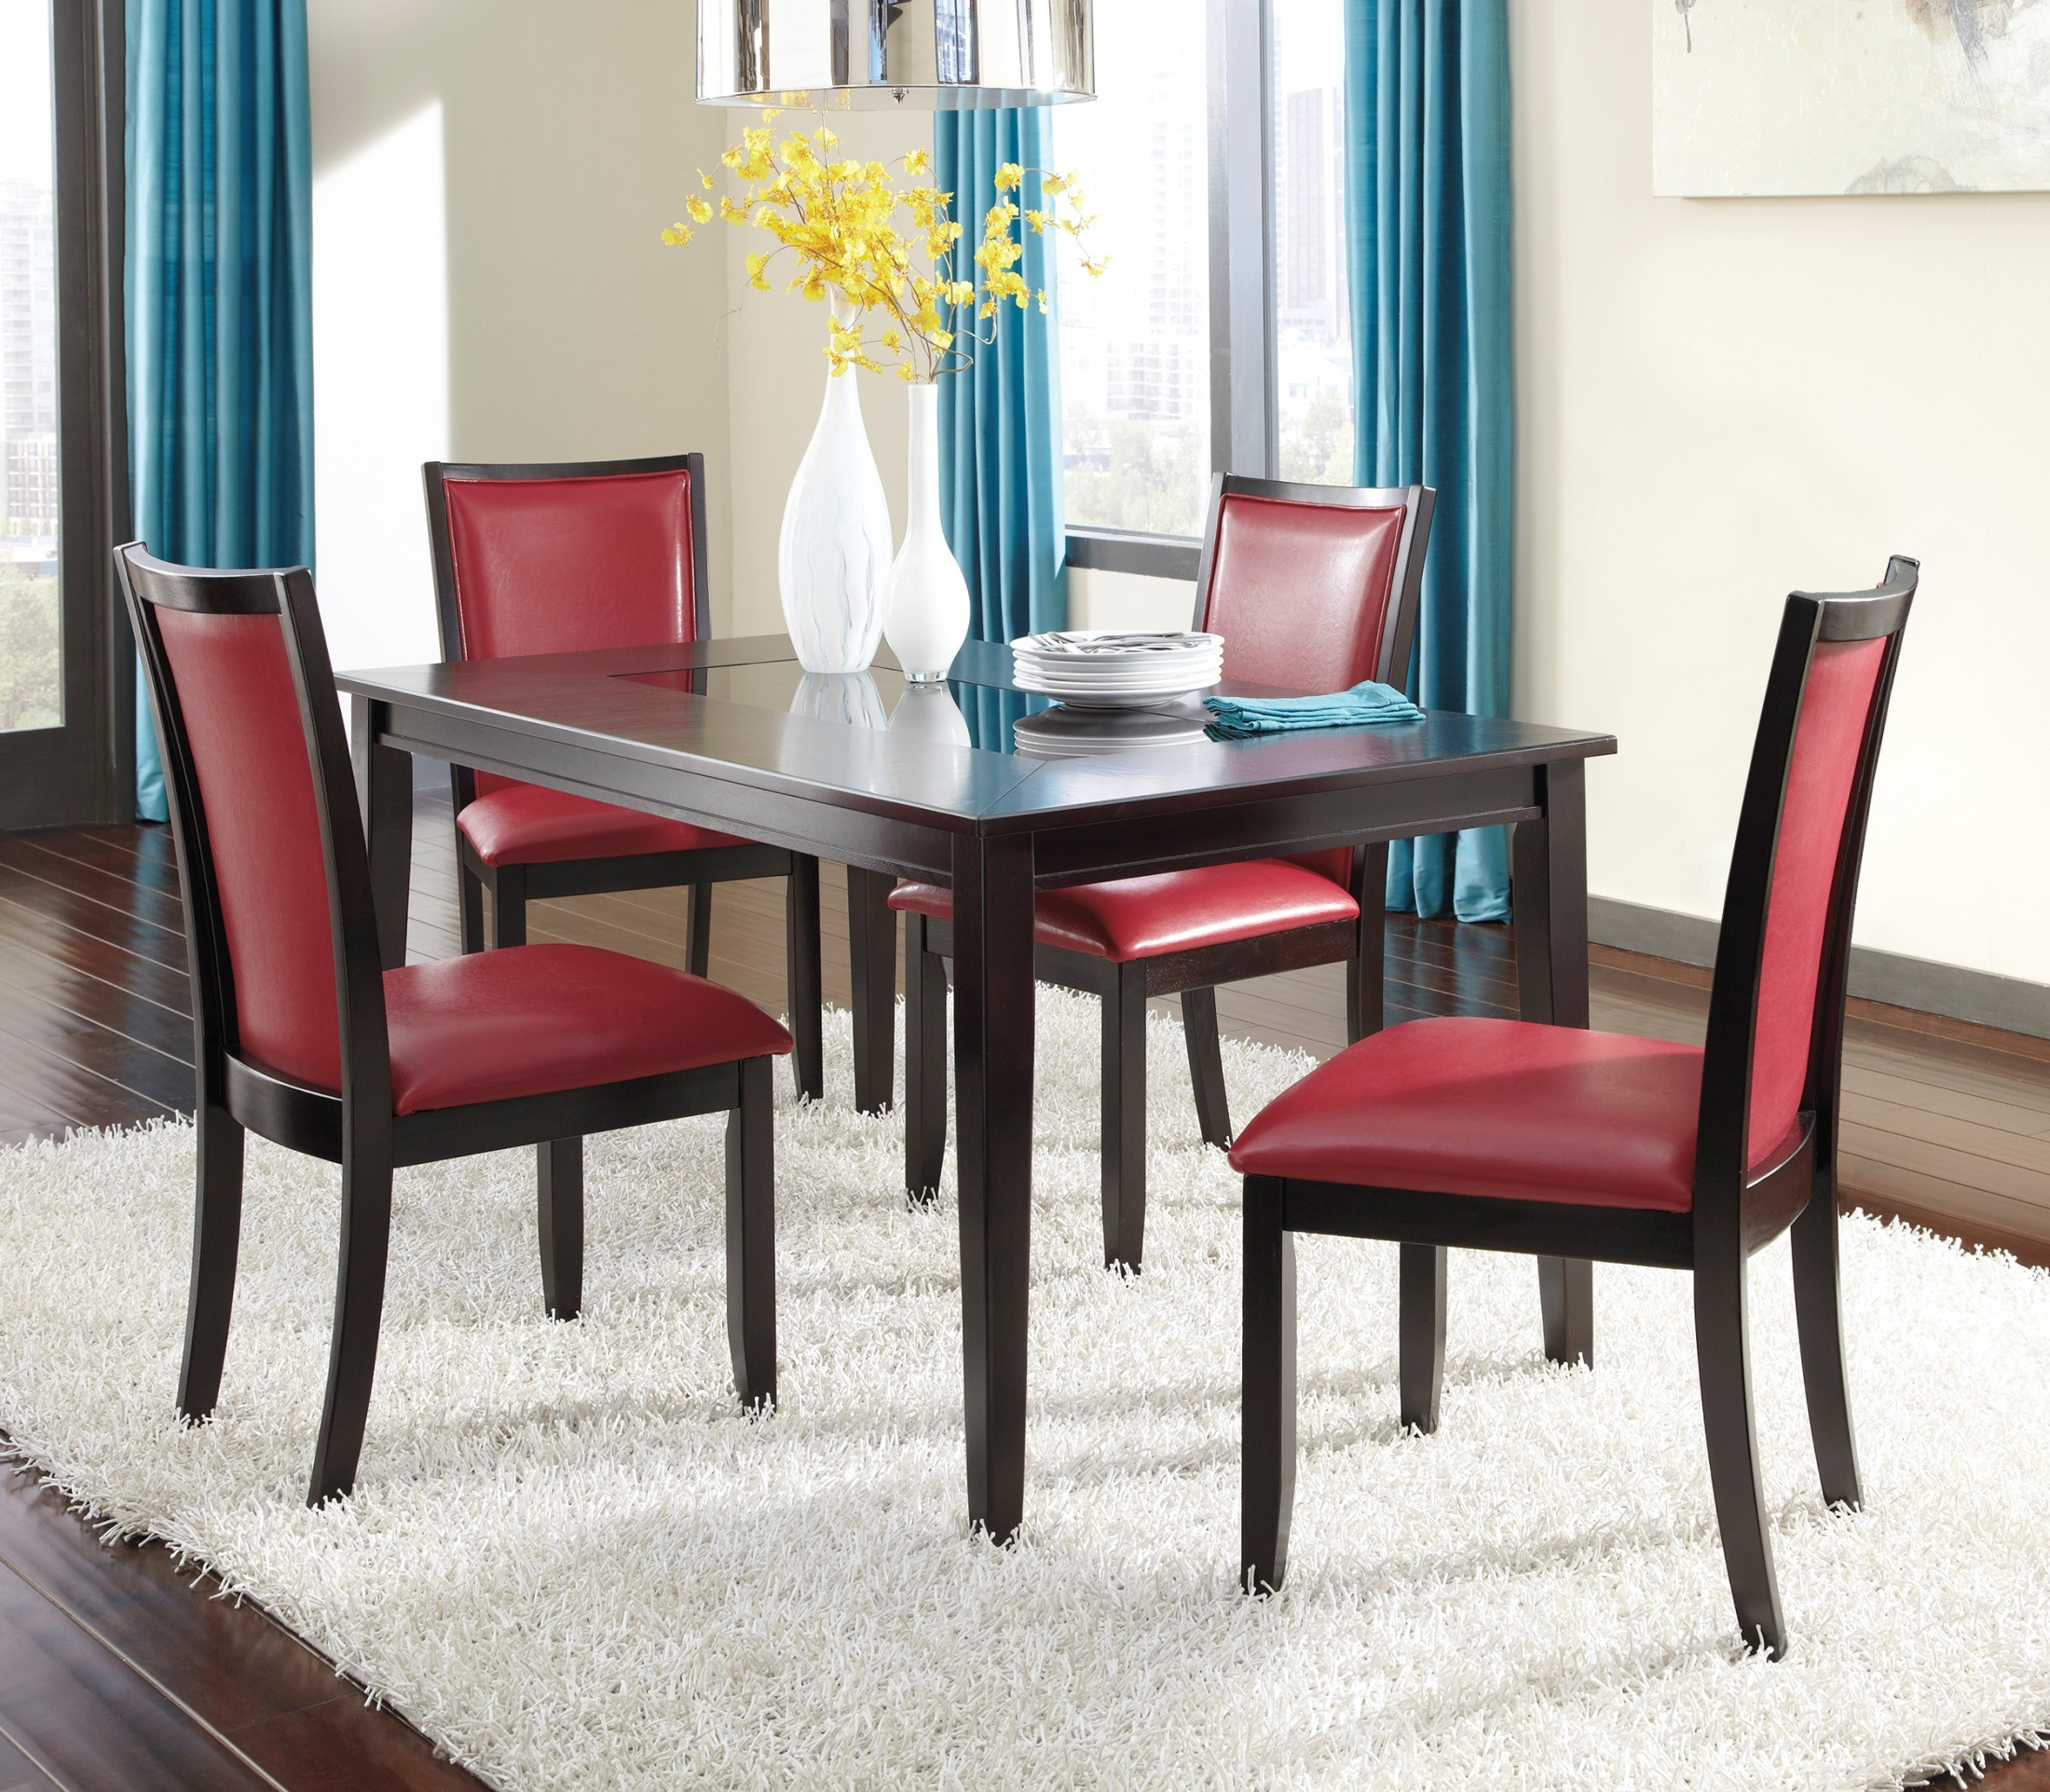 Red Upholstered Dining Room Chairs: Trishelle Dining Upholstered Red Side Chair Set Of 2 From